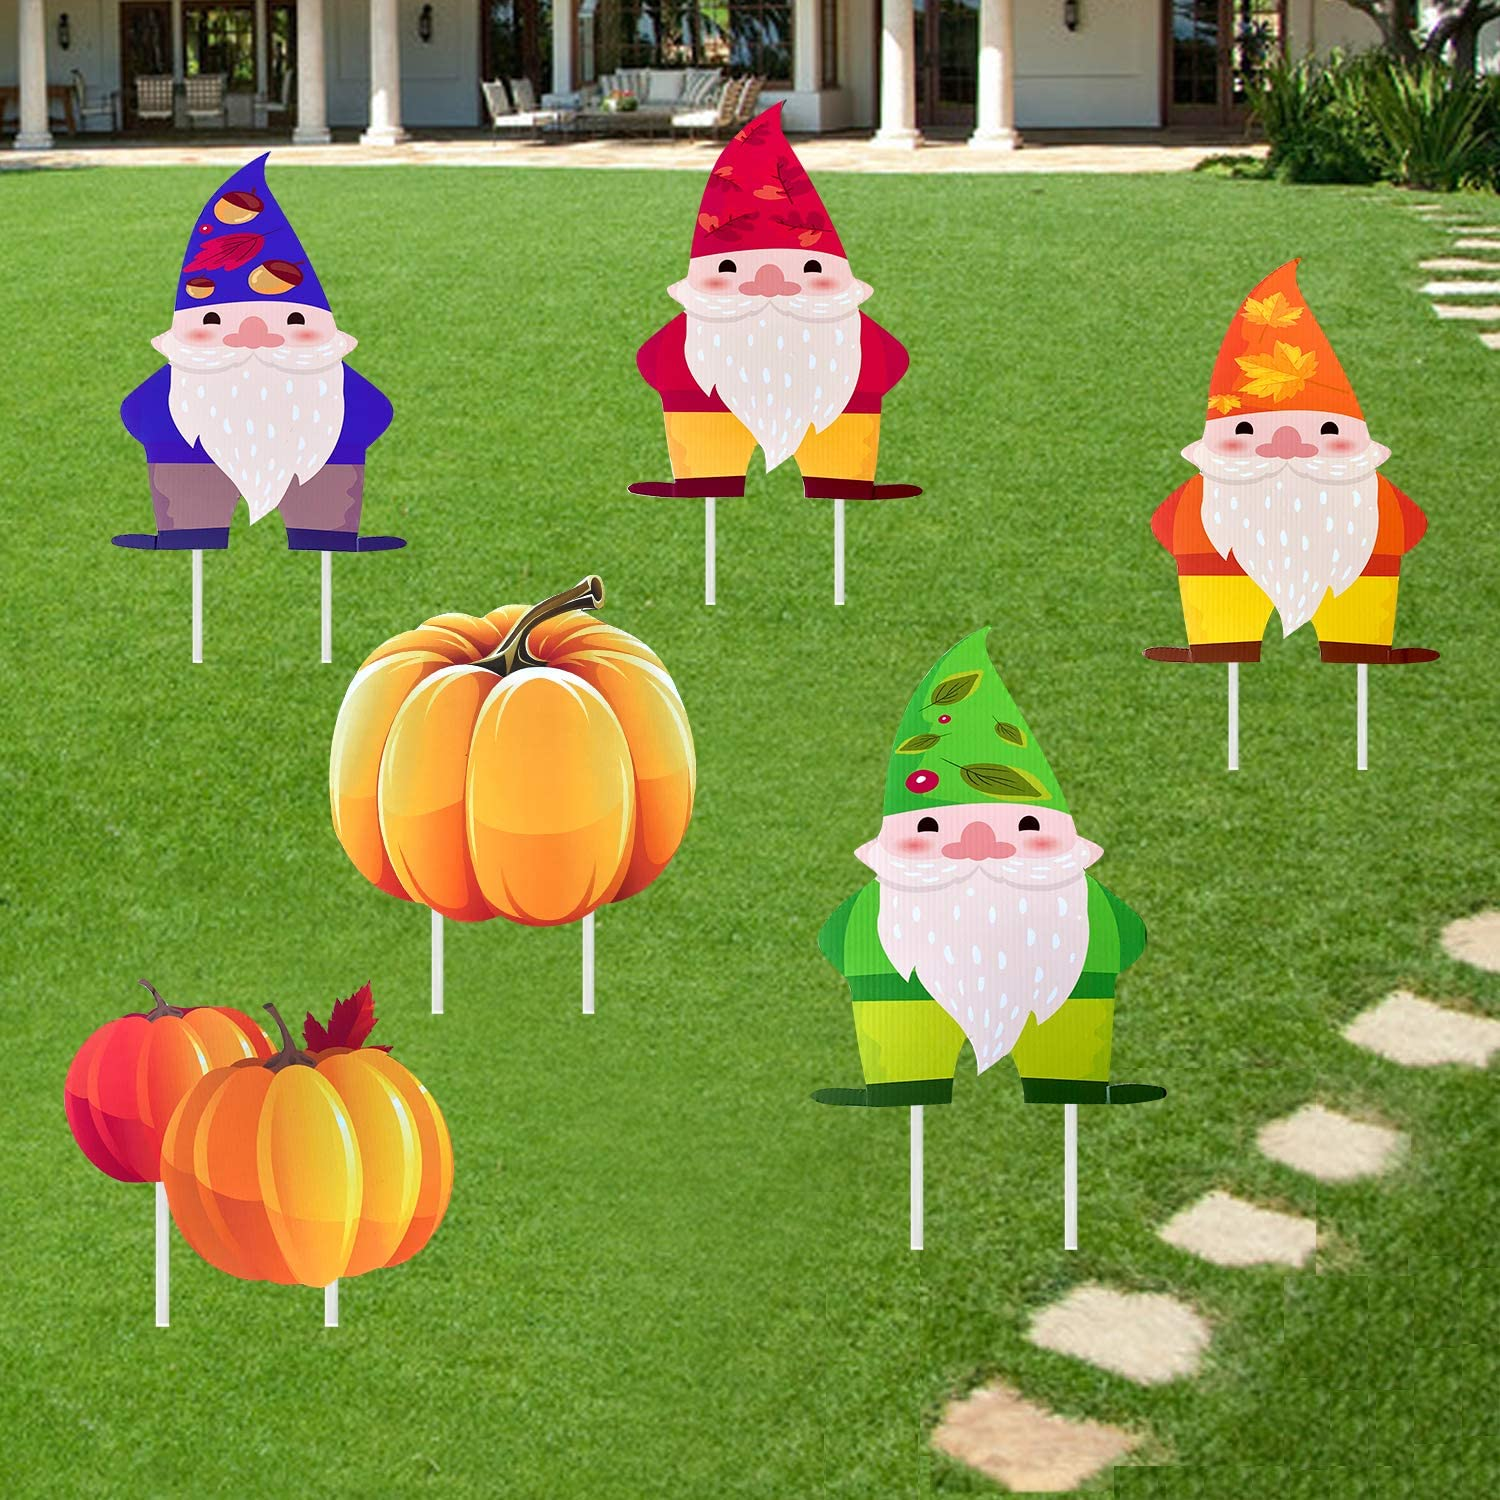 Deloky 6PCS Fall Thanksgiving Yard Sign with Stakes- Autumn Harvest Outdoor Lawn Sign Walkway Decor-Fall Gnome Swedish Autumn Tomte Elf Corrugated Yard Signs